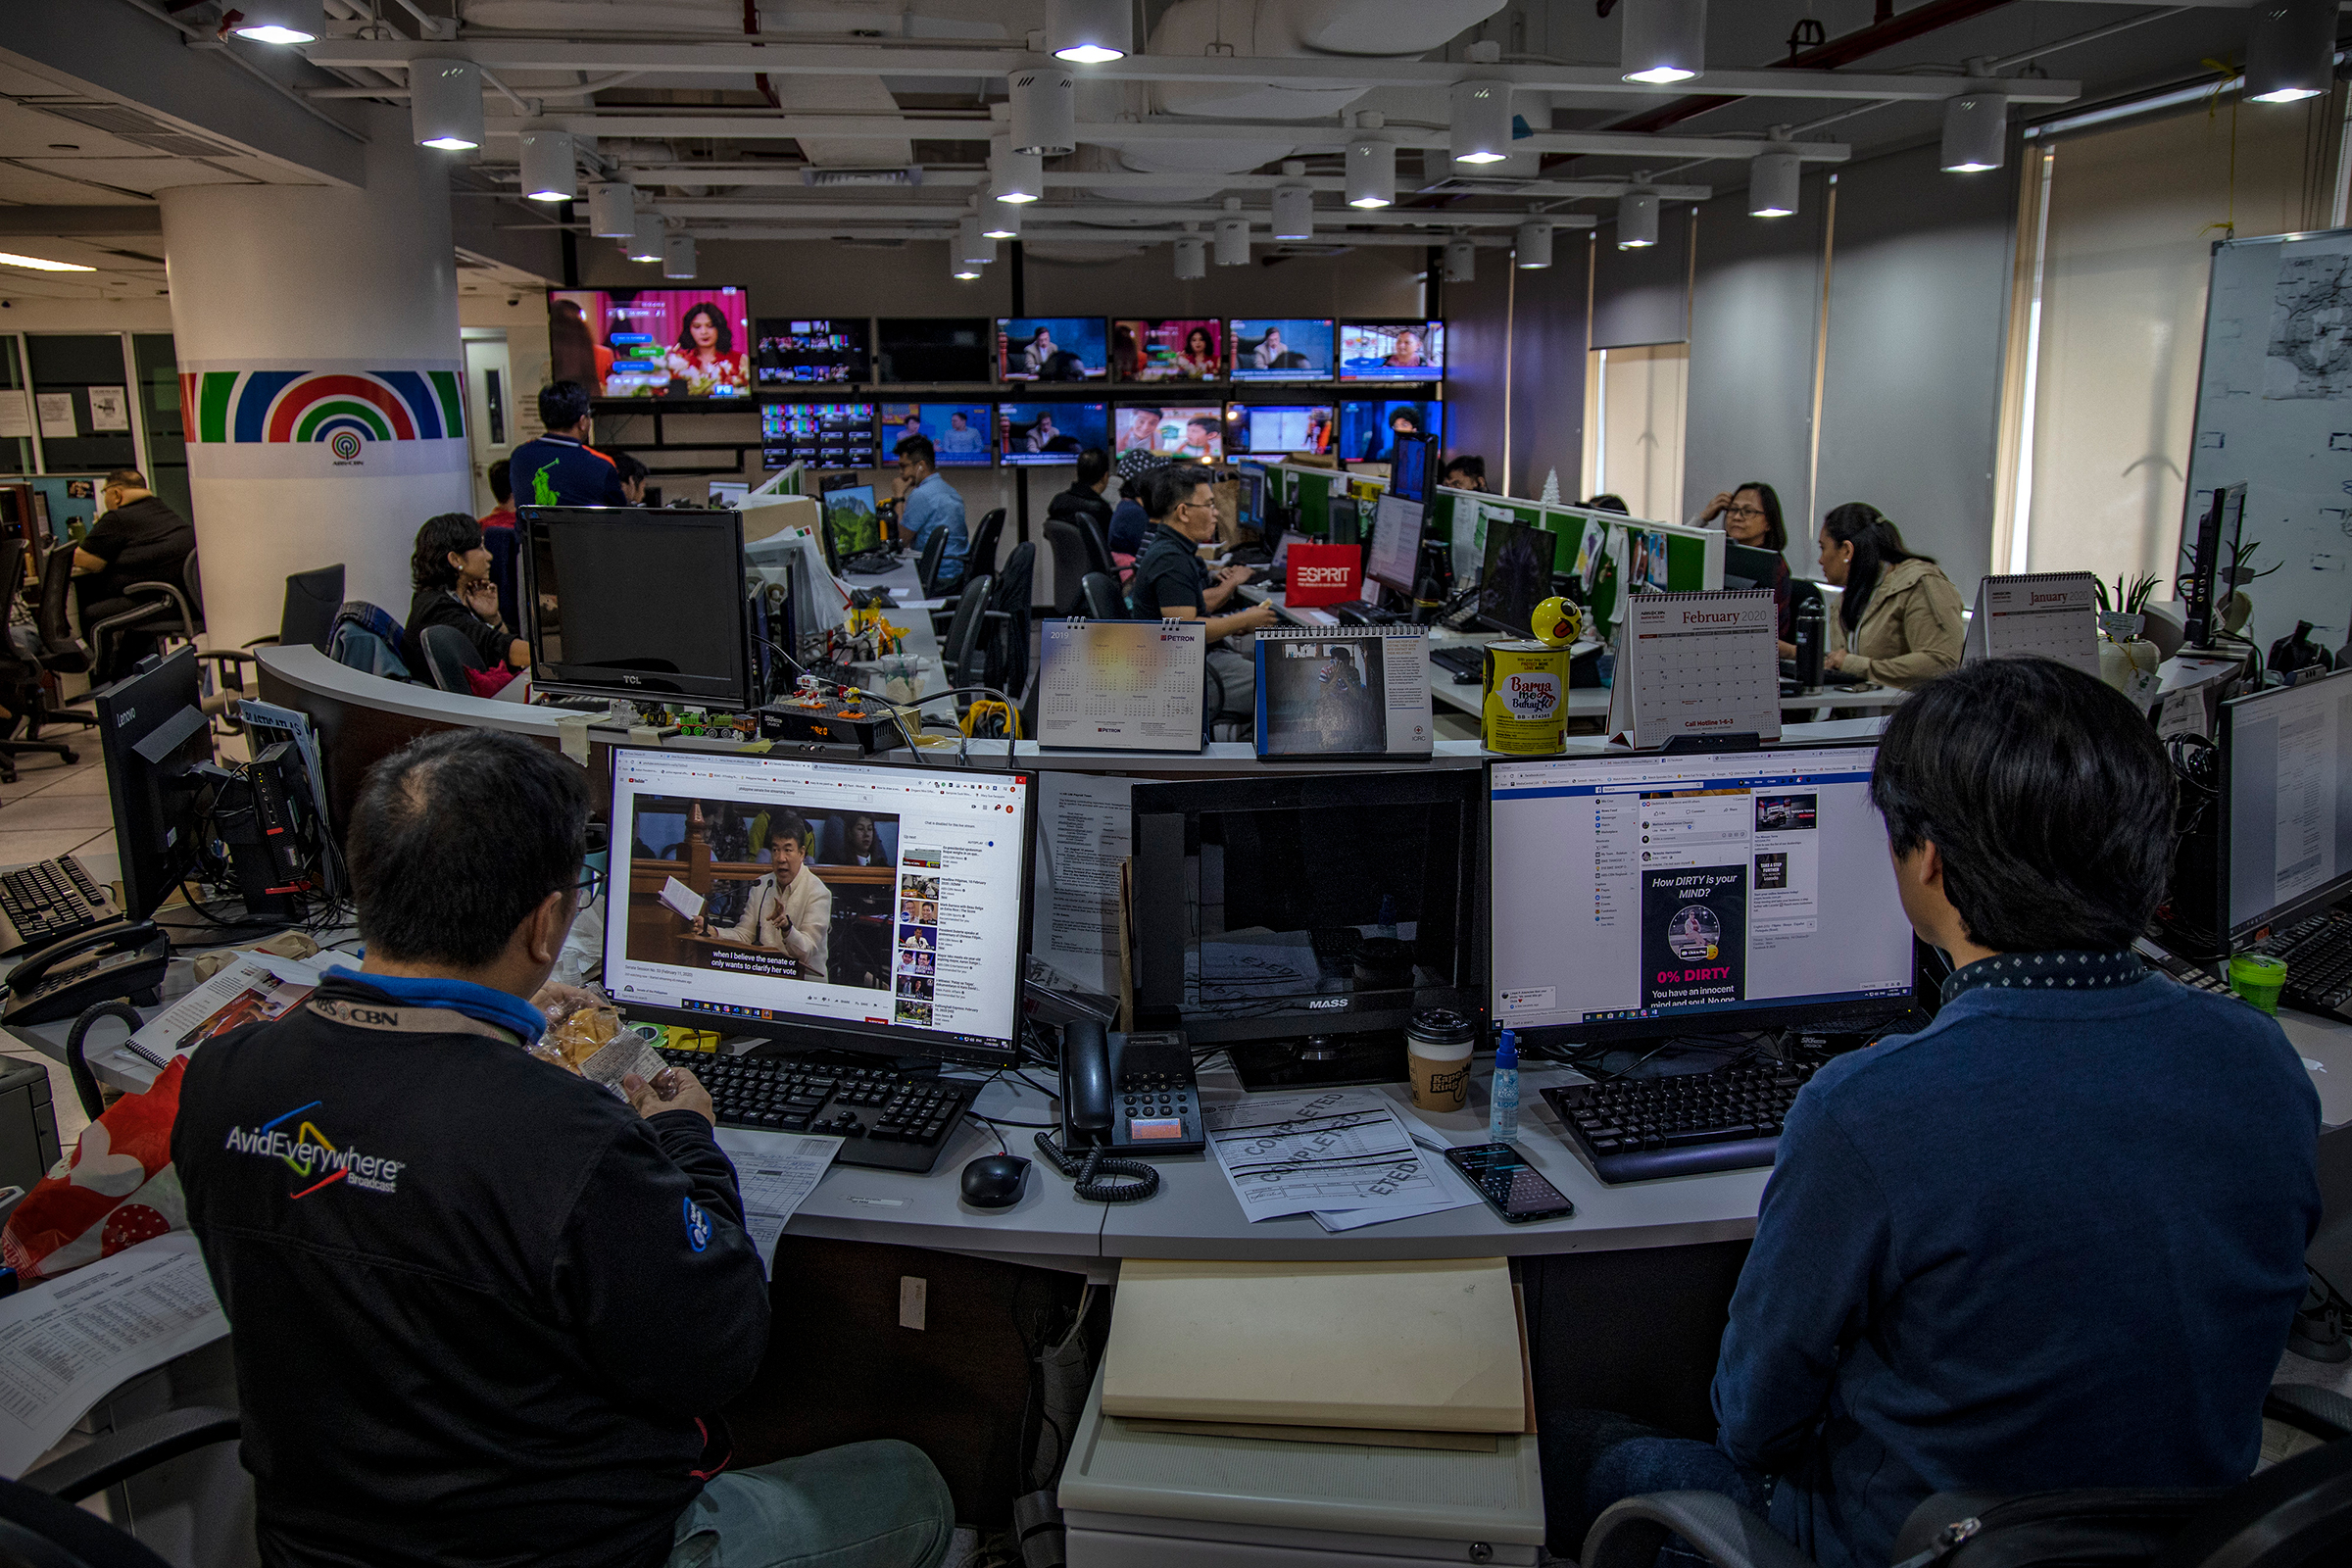 Reporters and editors in the newsroom of ABS-CBN News in Quezon City, Metro Manila, on Feb. 11, 2020.